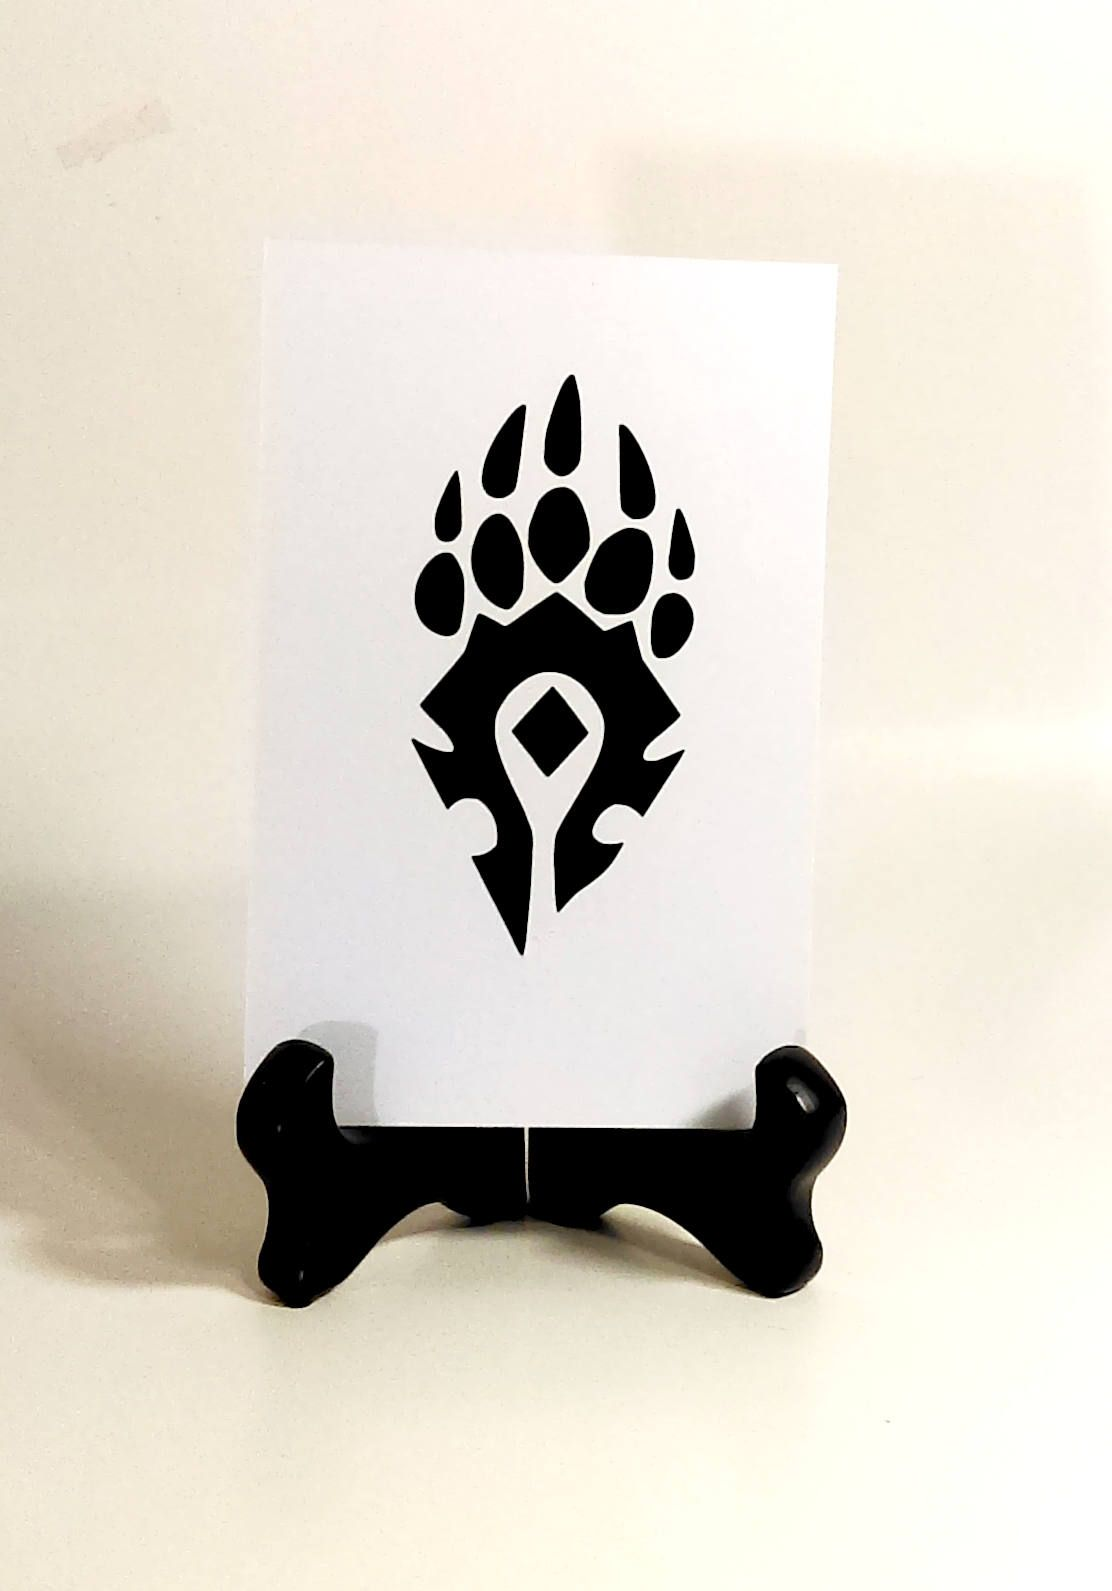 Hey World Of Warcraft Horde Fans Got A Druid Then You Gotta Have